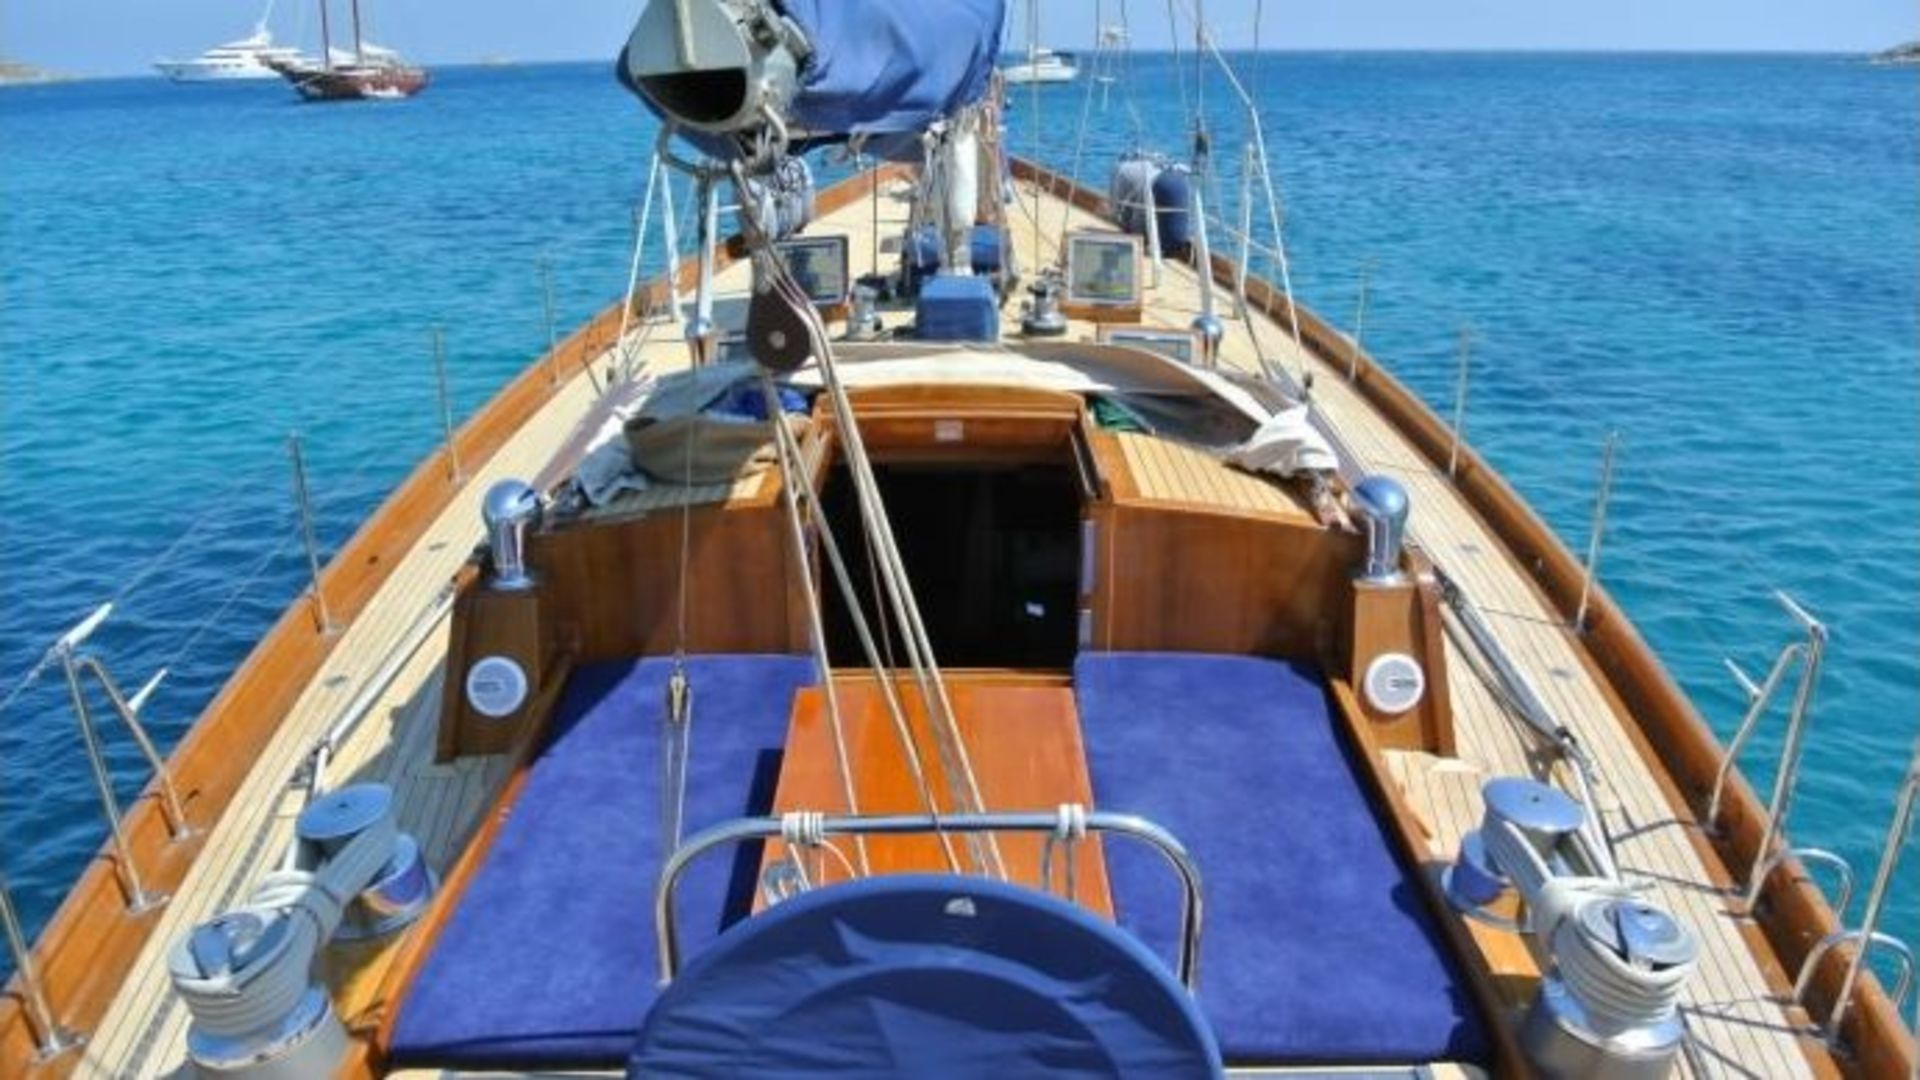 star 22 yacht for sale sangermani